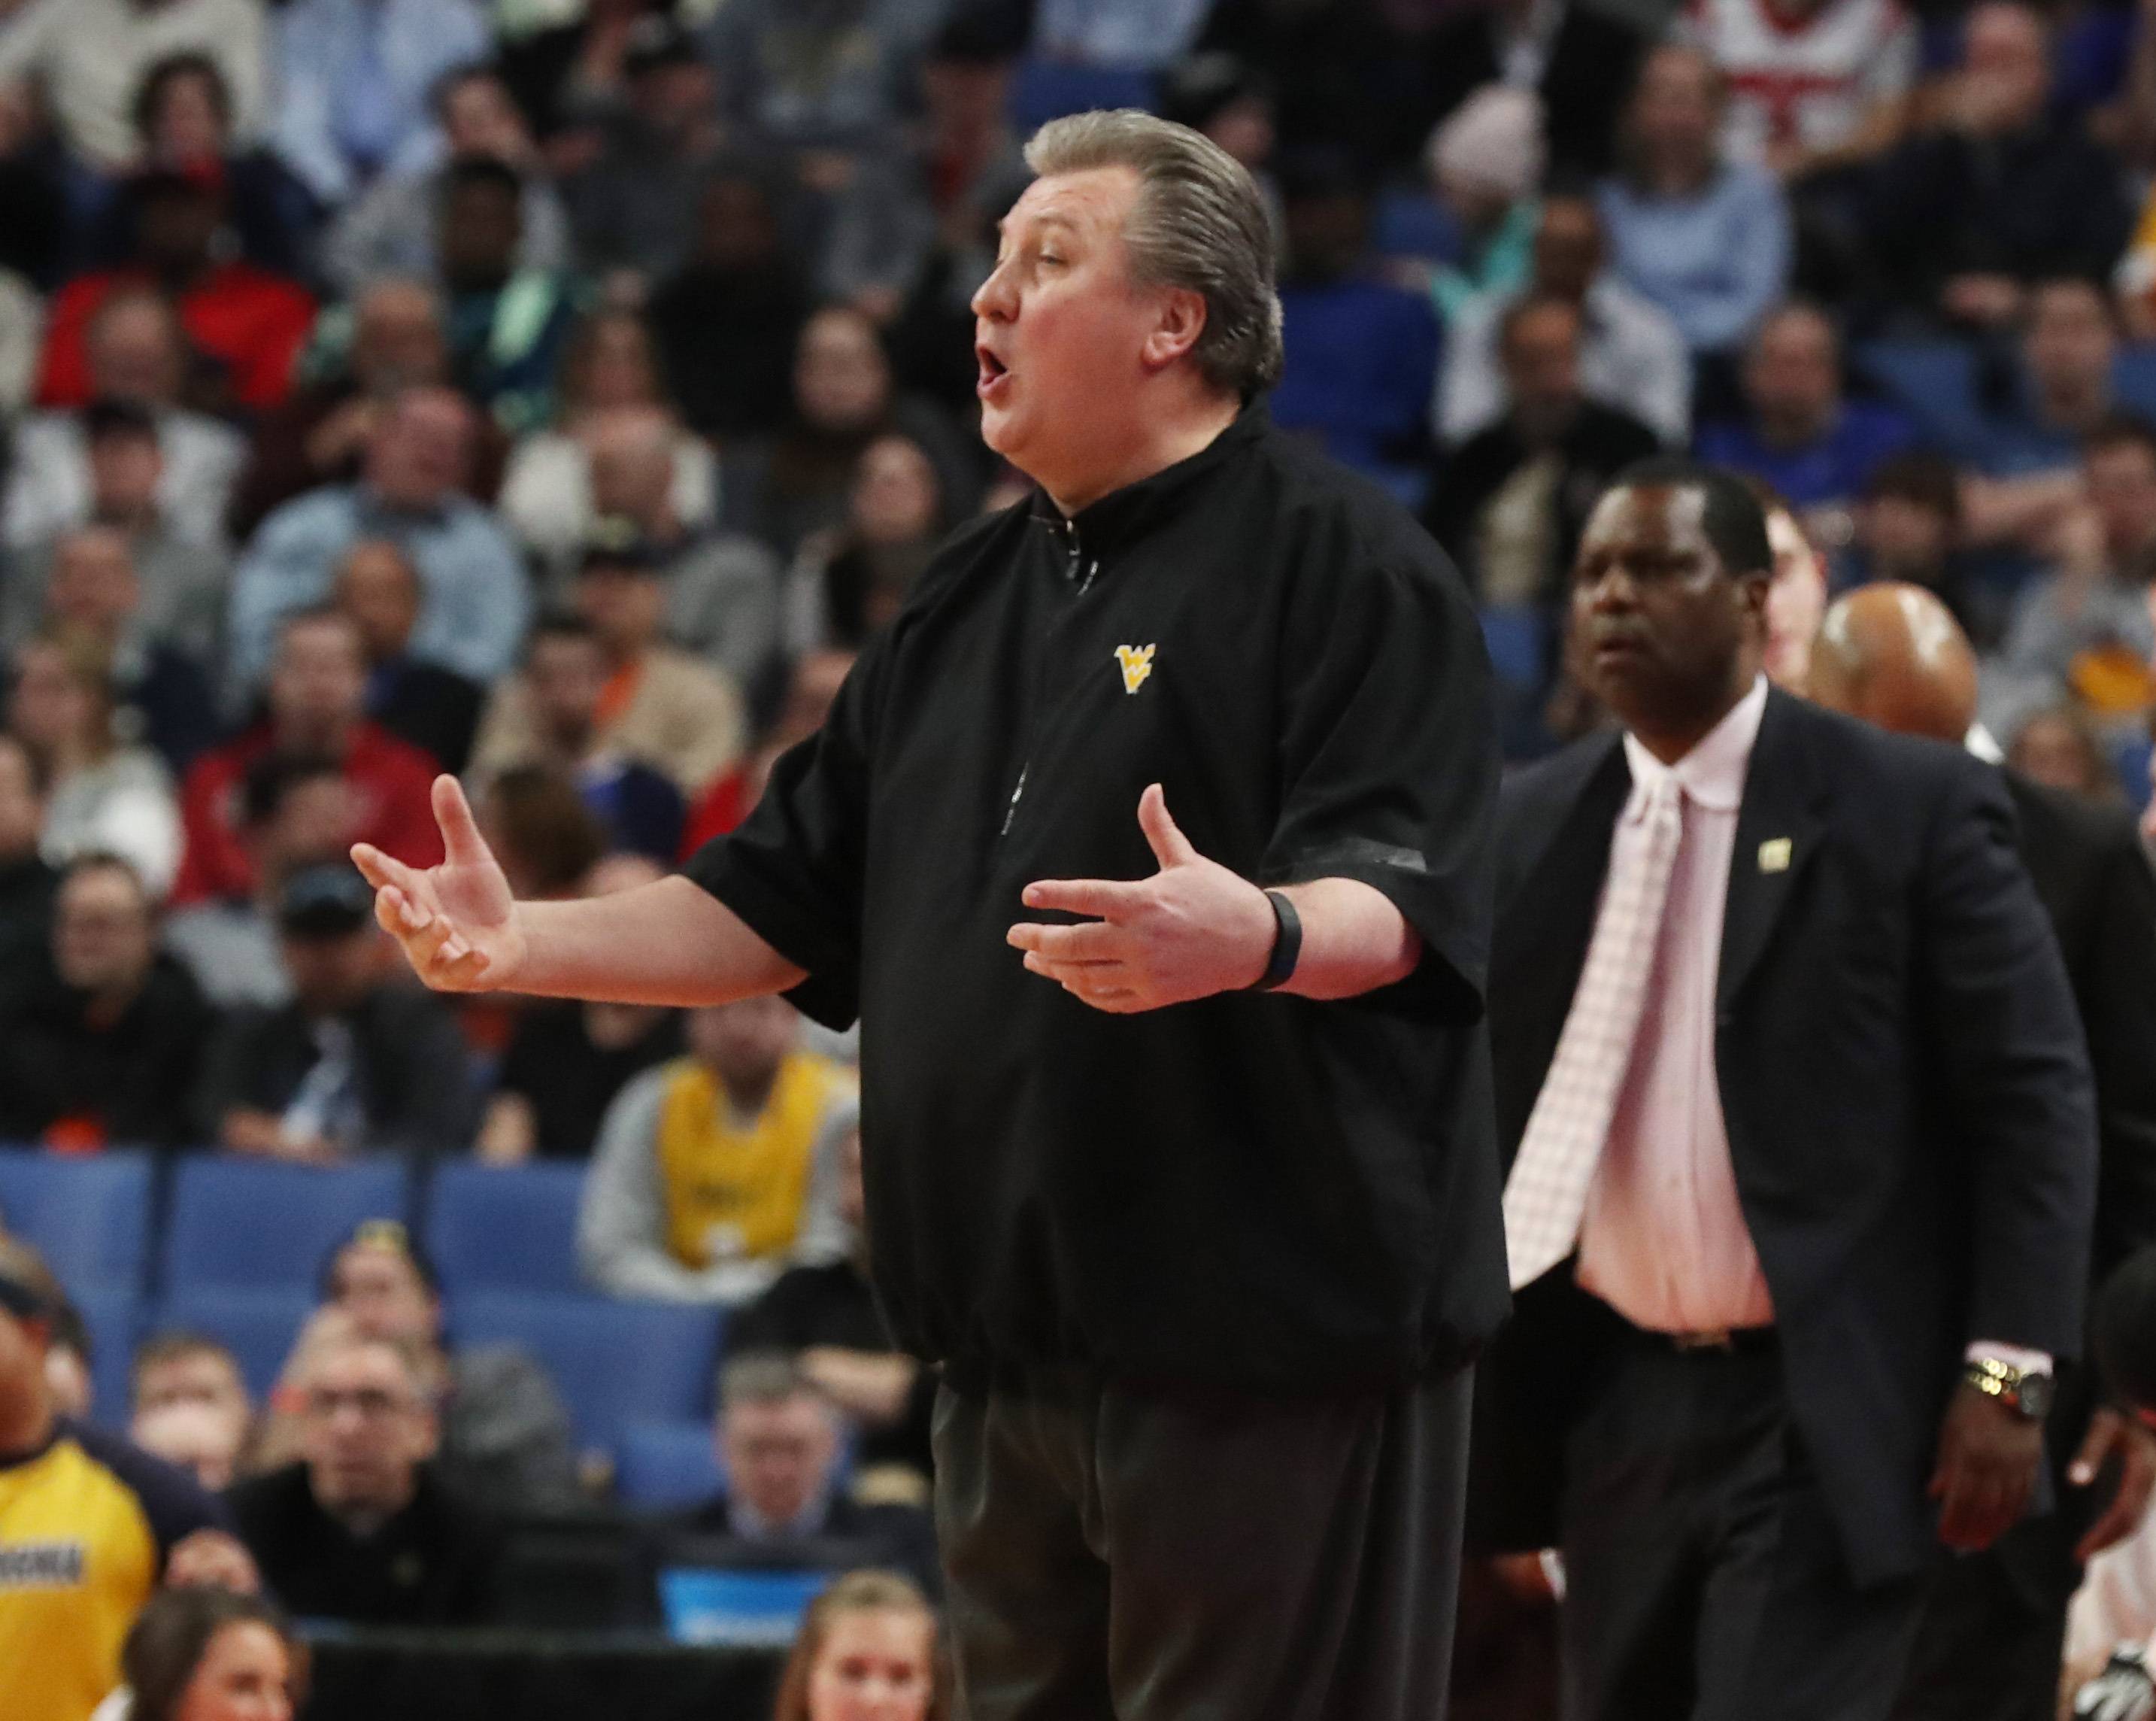 West Virginia Mountaineers Bob Huggins yells to his players in the first half during Thursday's second game of the NCAA Tournament at Key Bank Center.  (James P. McCoy/Buffalo News)